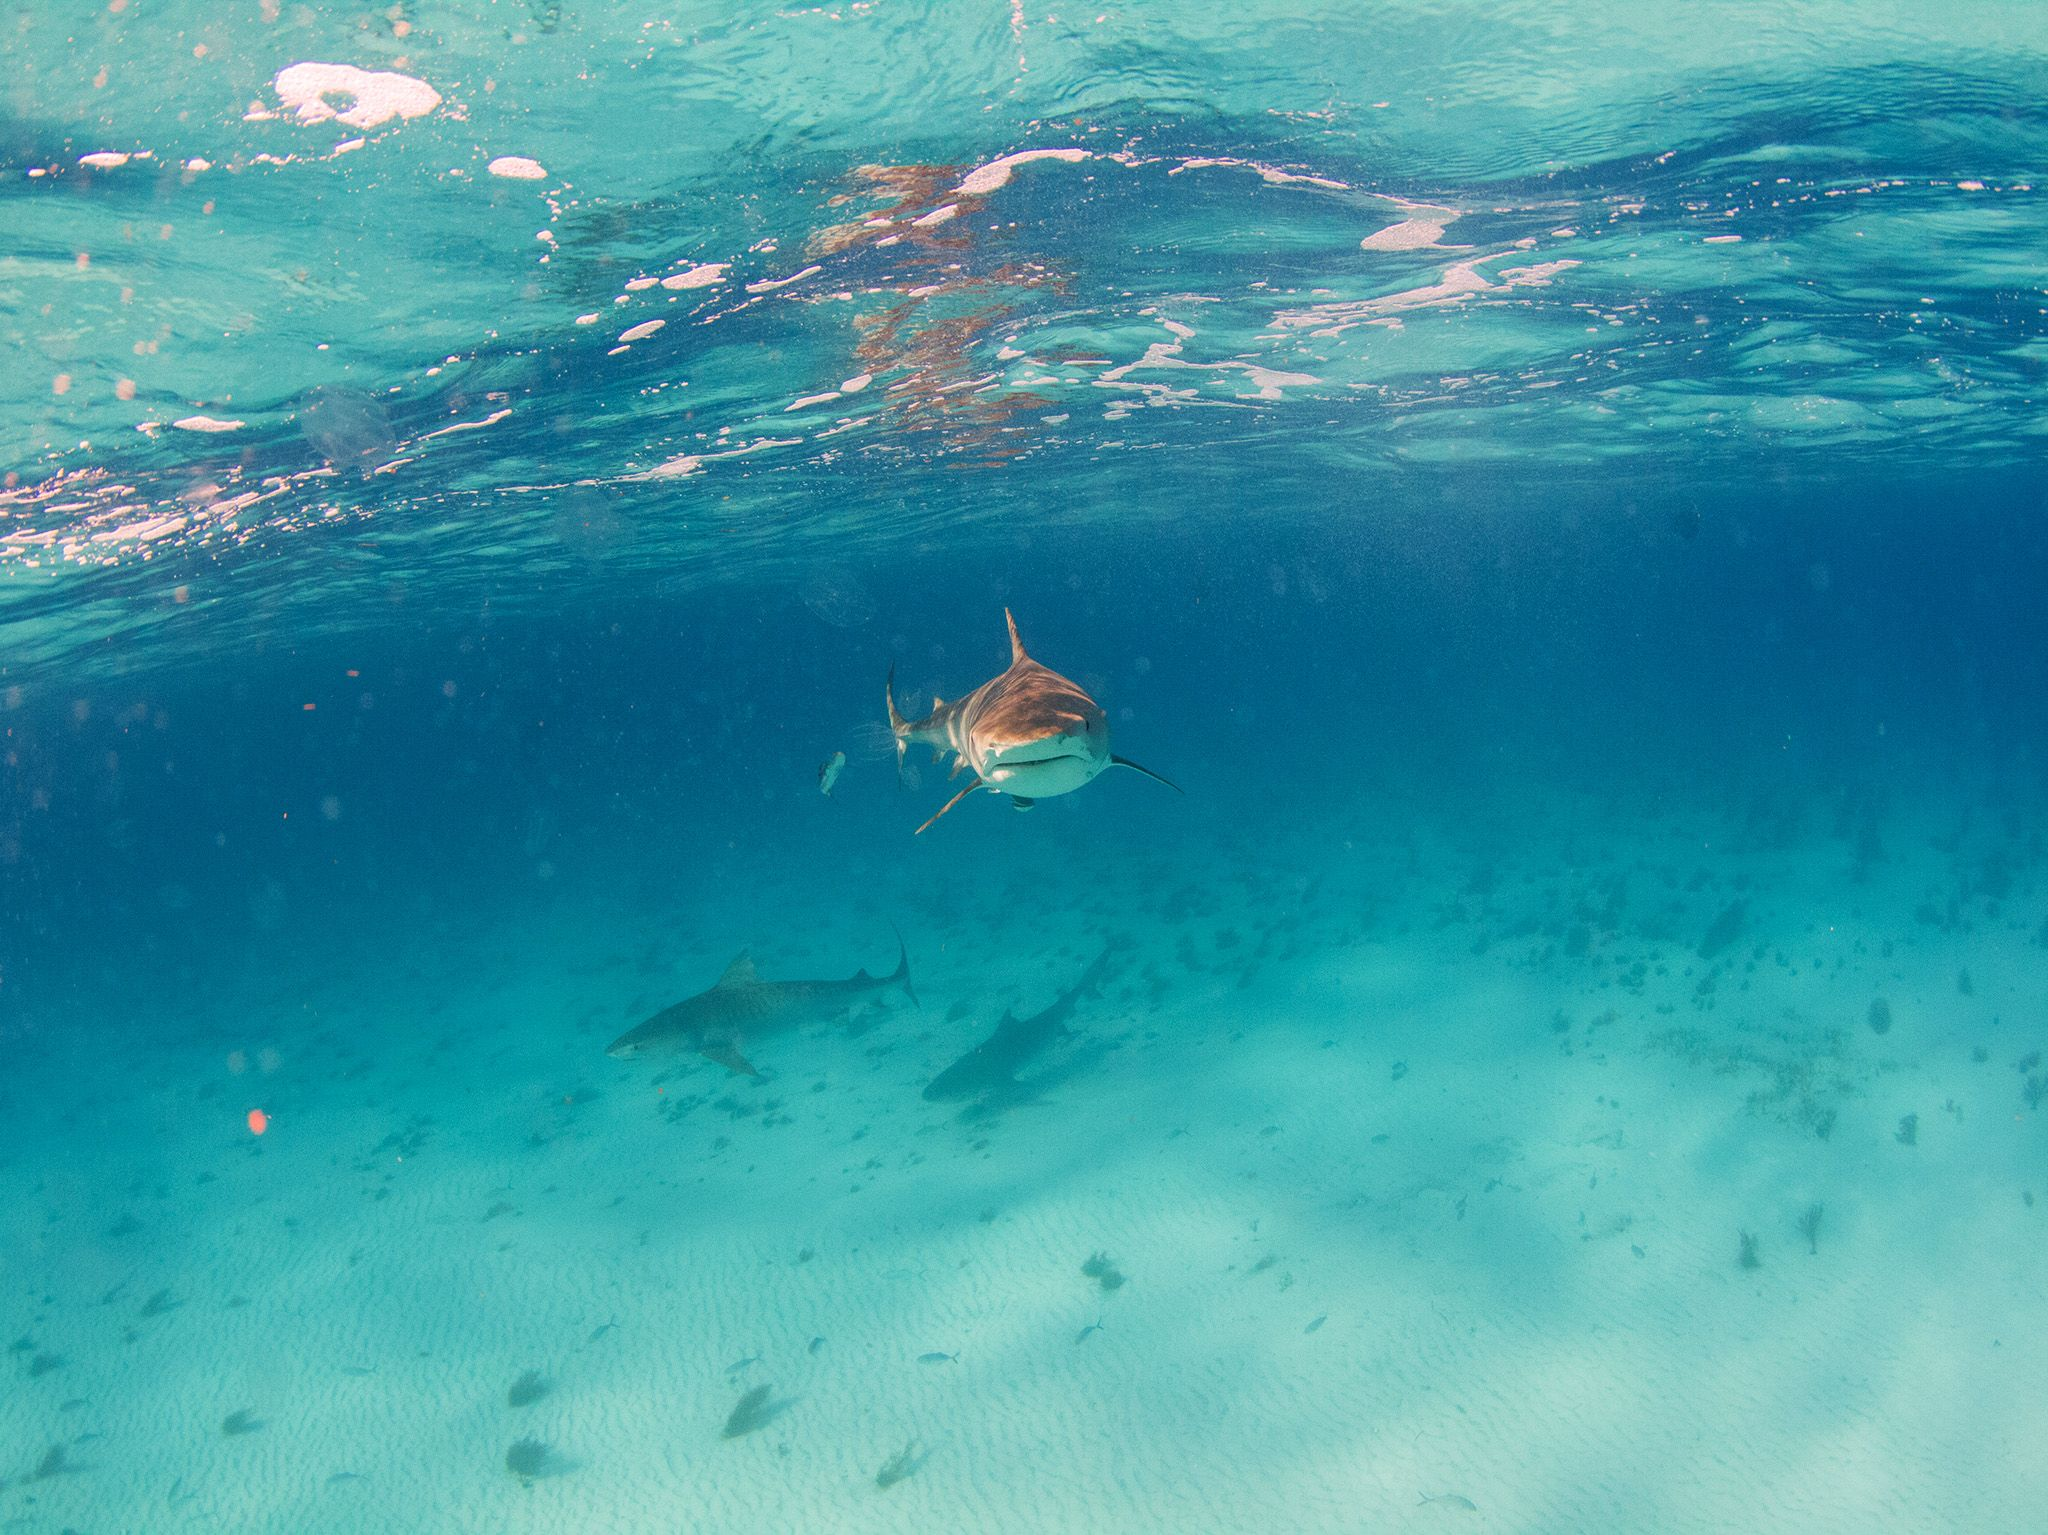 Bahamas:  A tiger shark approaches the camera. This image is from Tiger Shark Terror. [Photo of the day - August 2017]